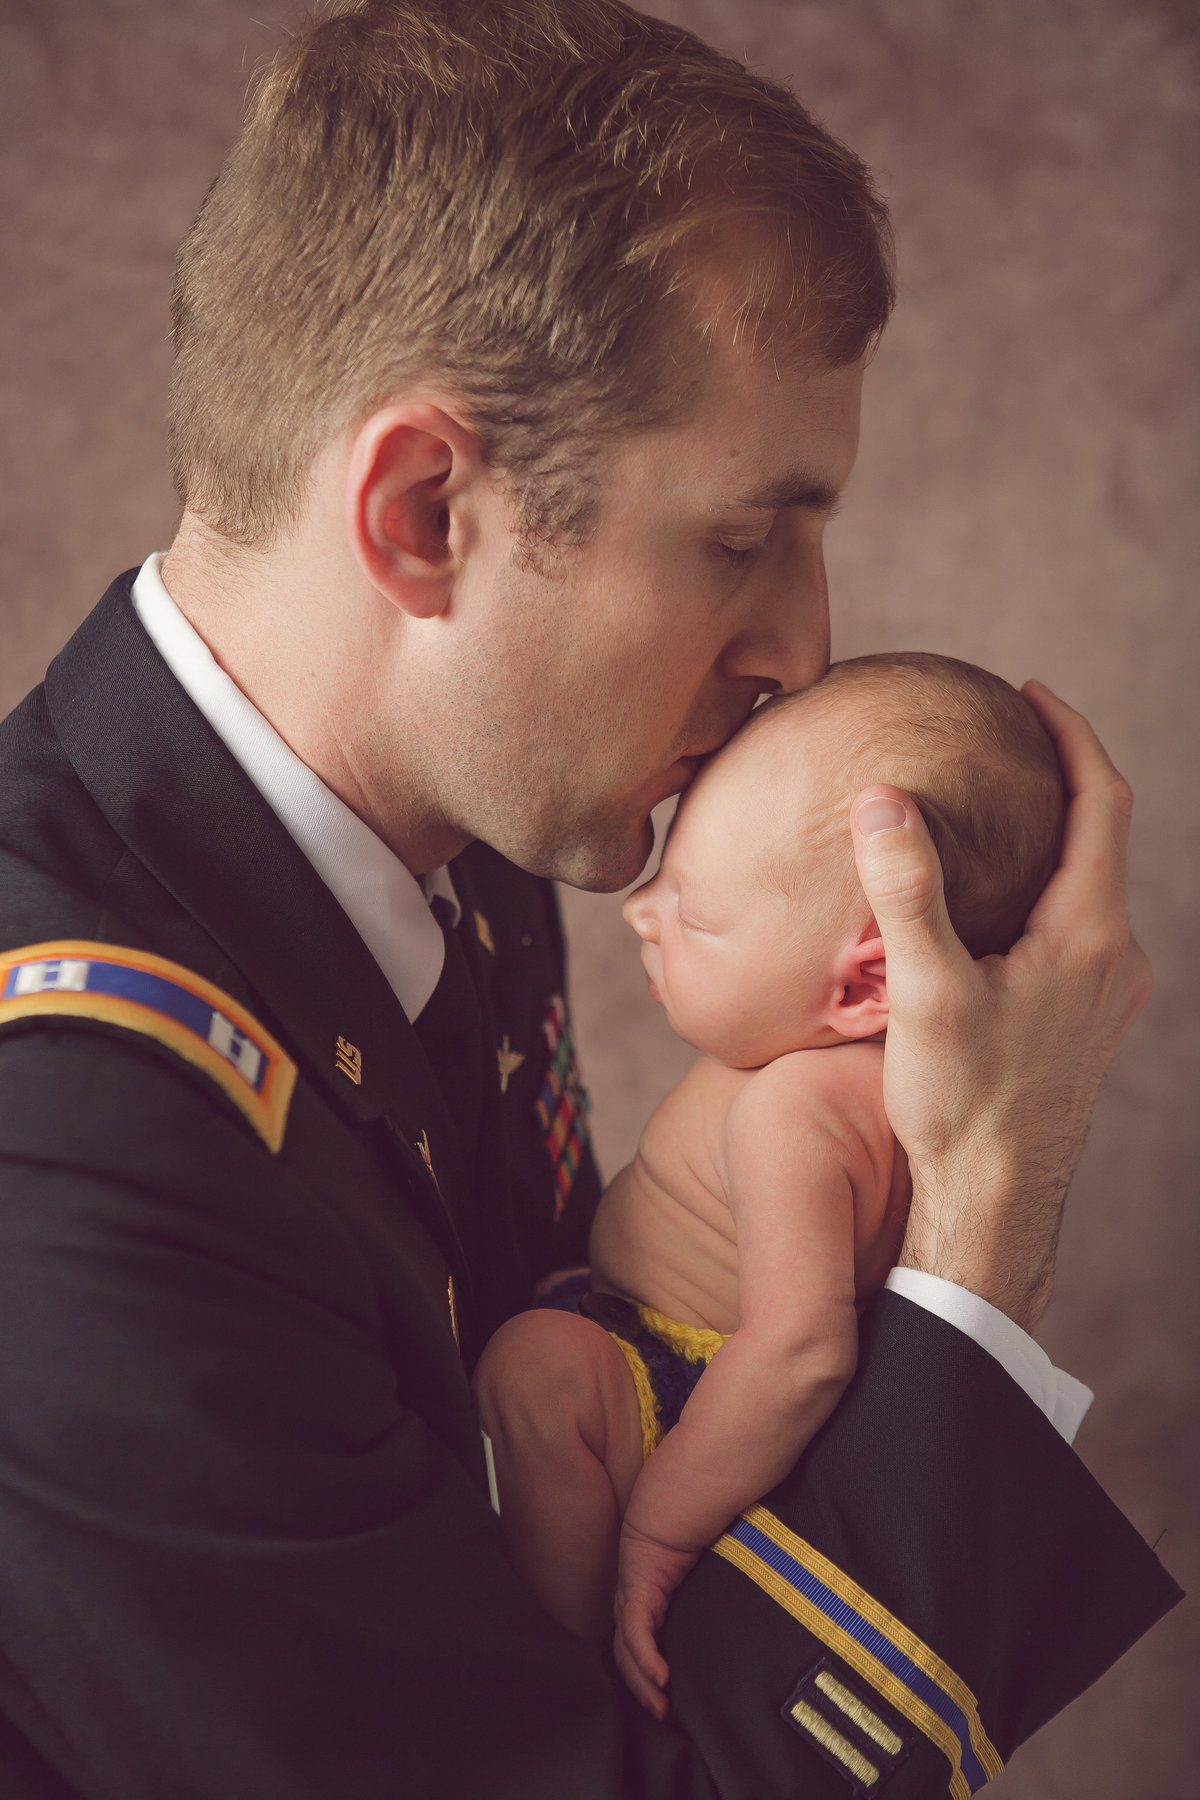 West Point NY newborn baby and army dad in uniform in the Hudson Valley by professional photographer in Cornwall NY photo studio